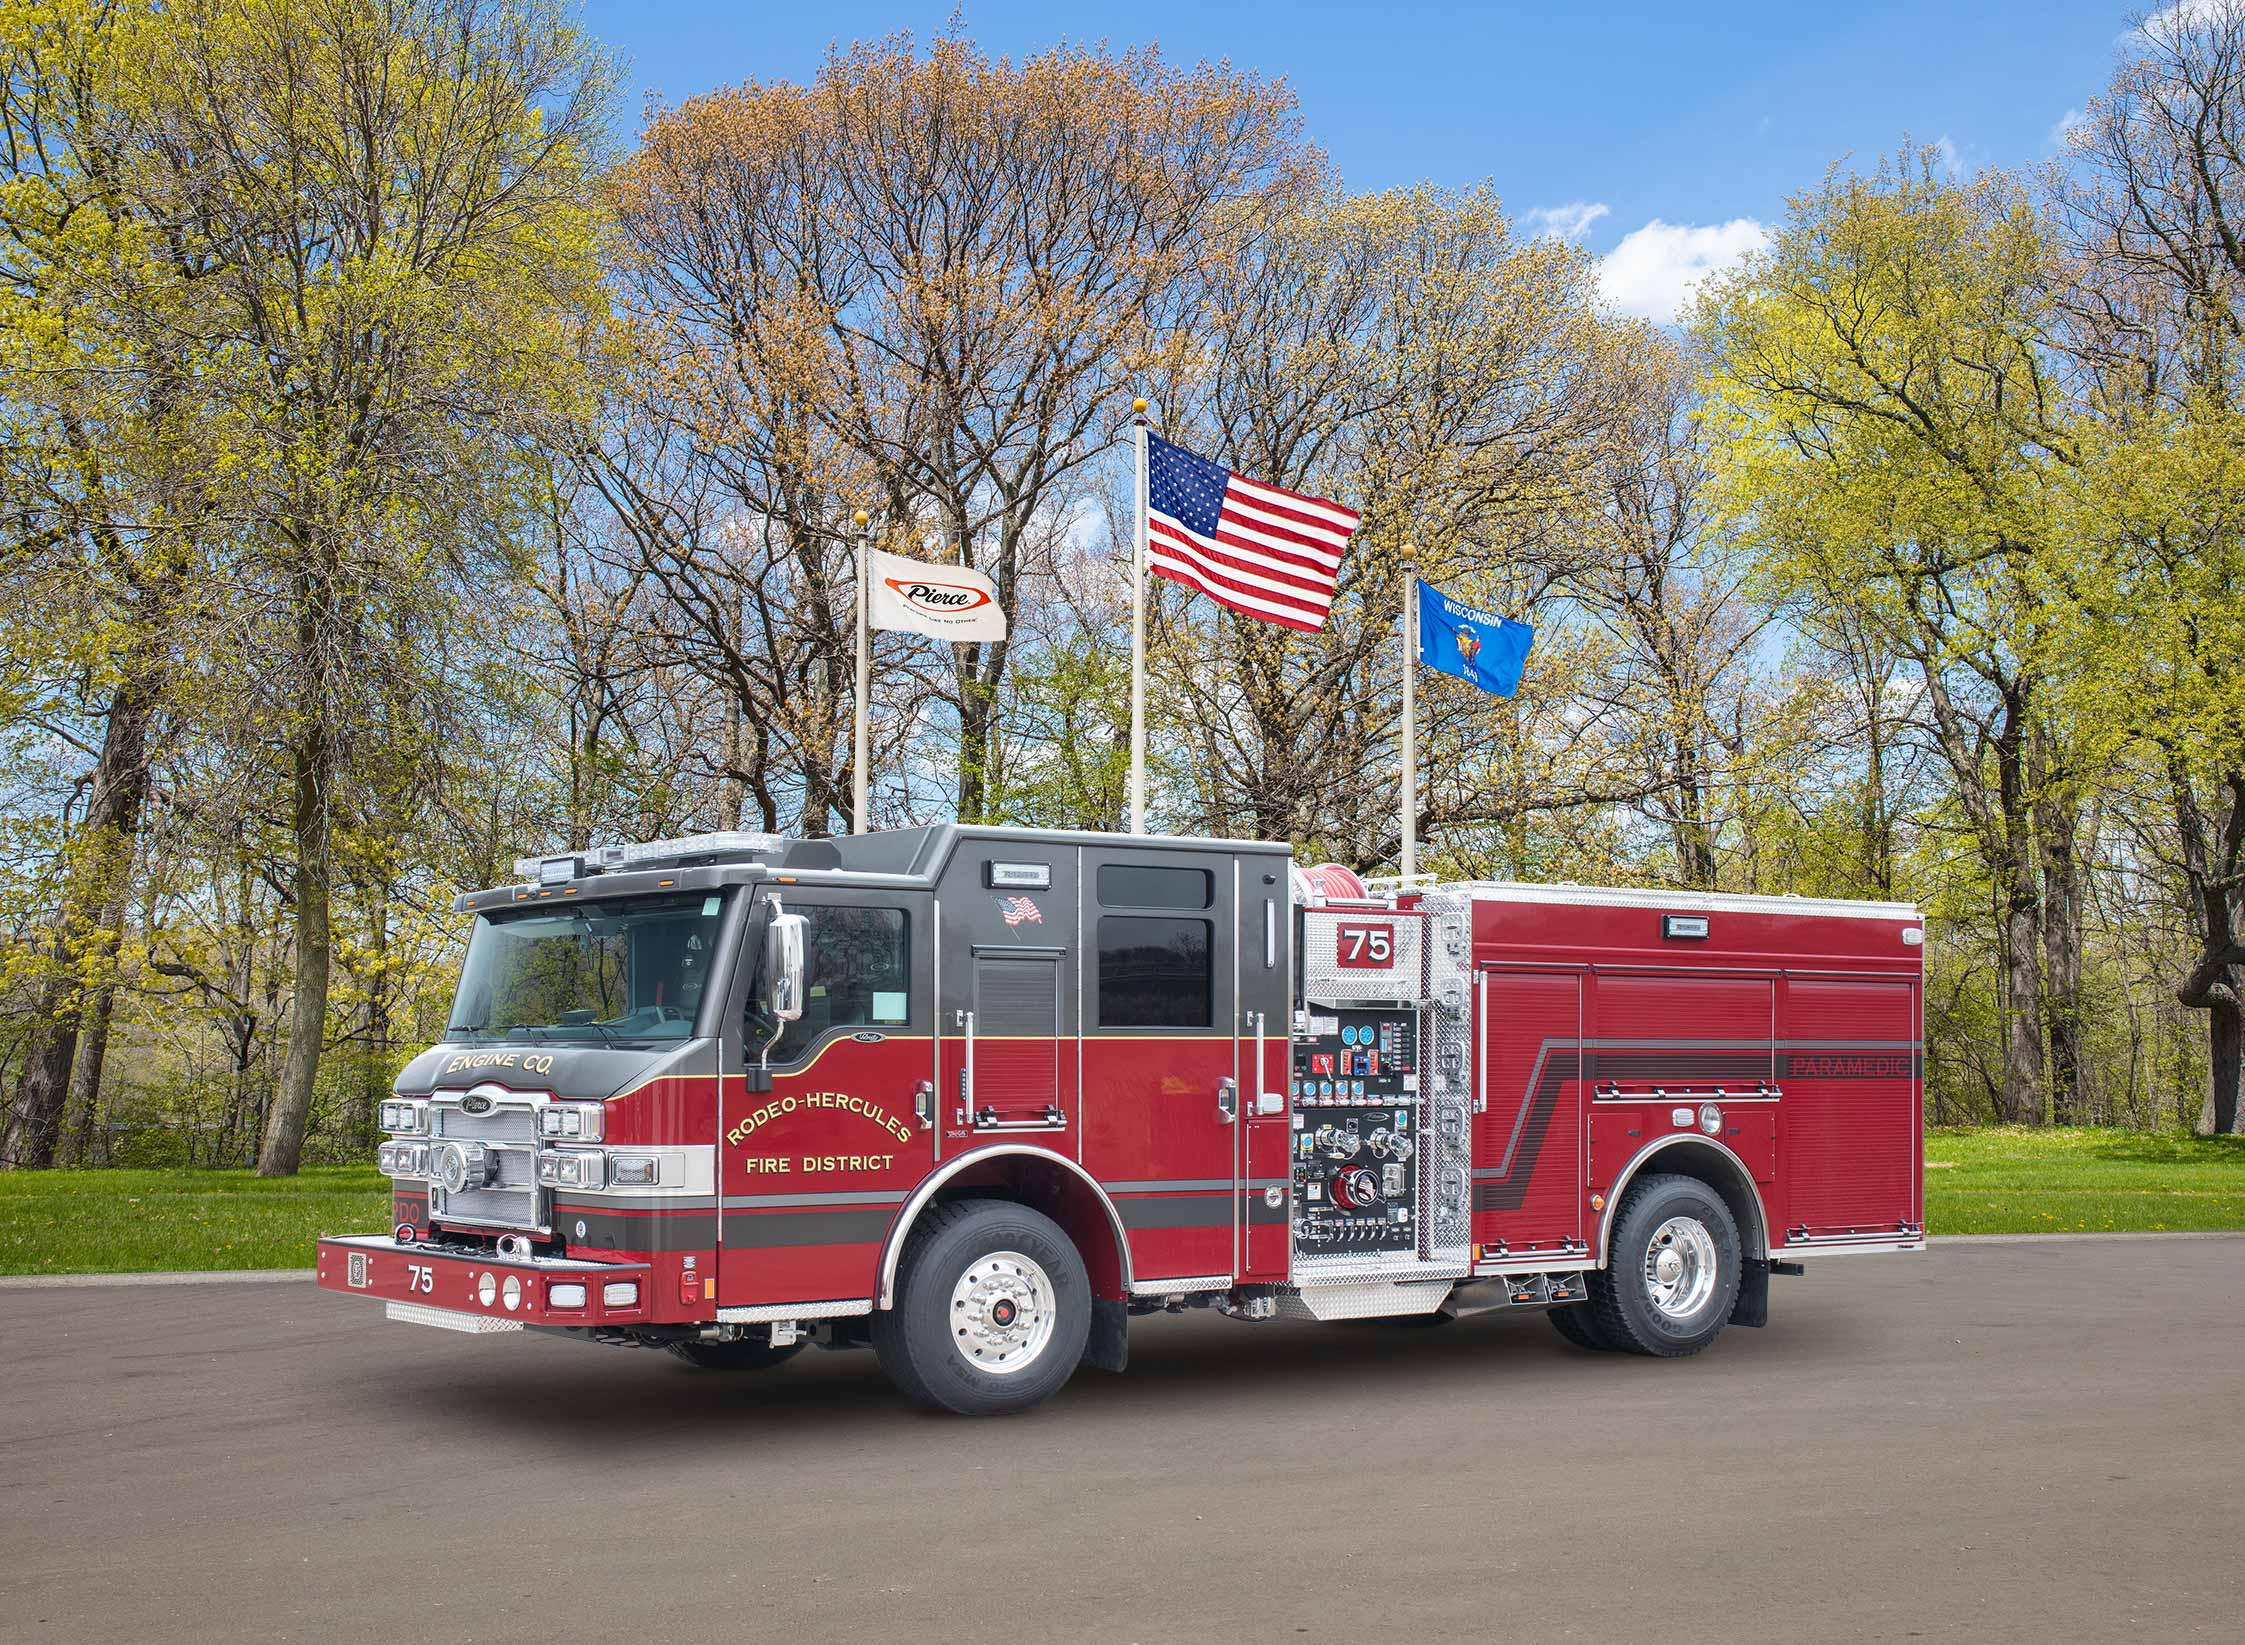 Rodeo-Hercules Fire District - Pumper